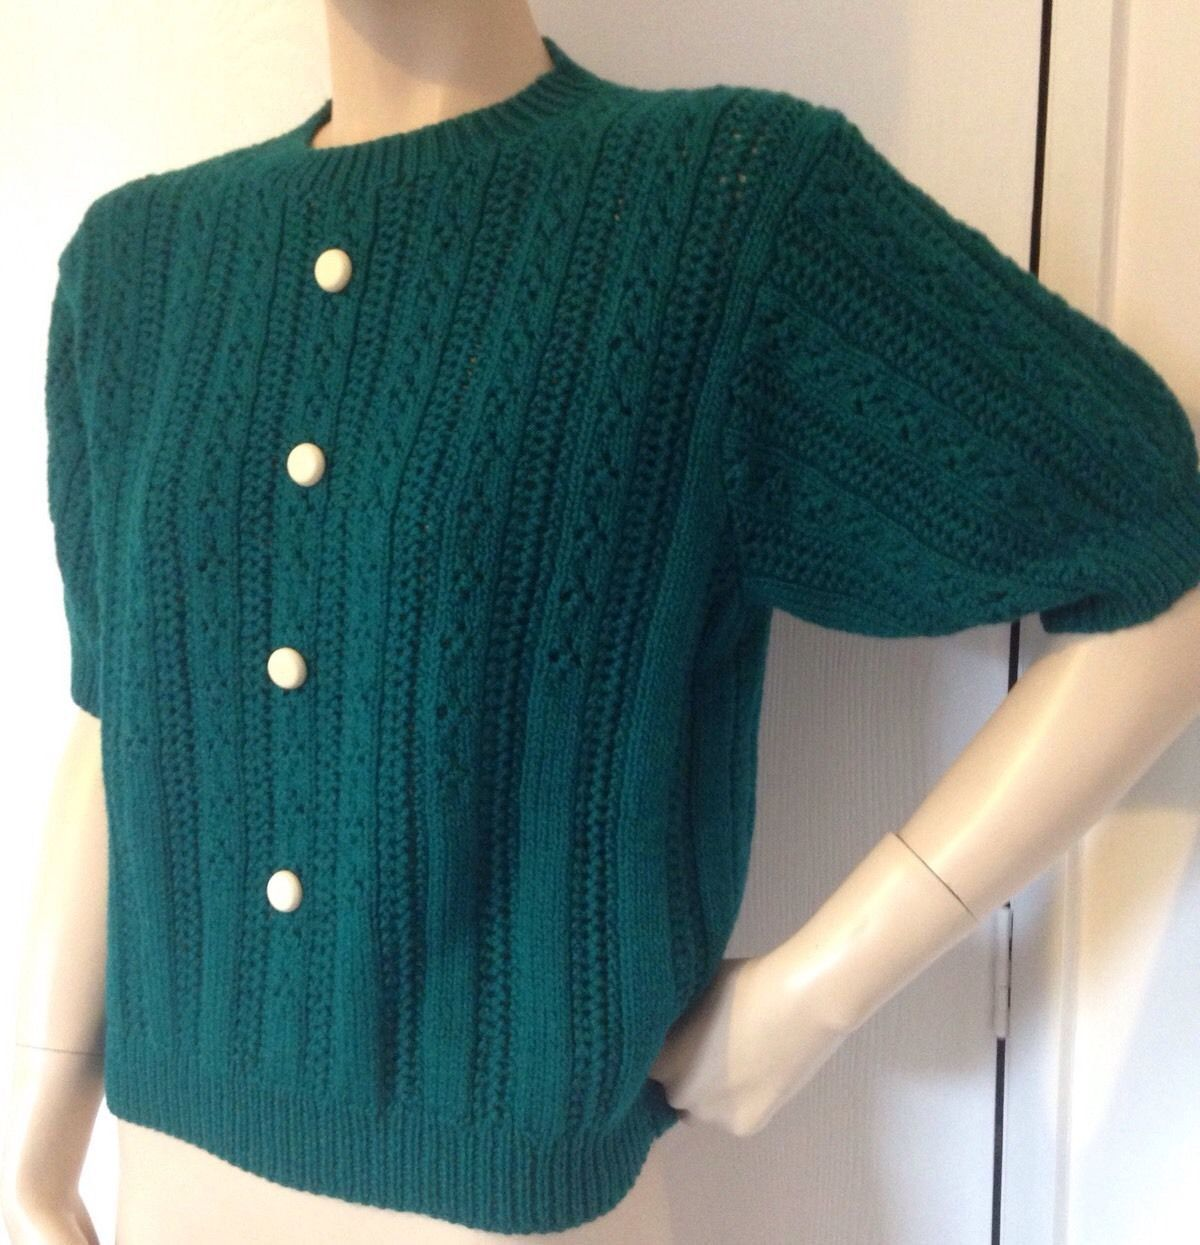 Vintage 1970s Dark Pine Green Knitted Cosy Jumper Top Retro WWII Wartime 1940s/50s Style Sweetheart Rockabilly by JuliesLittleSecrets on Etsy